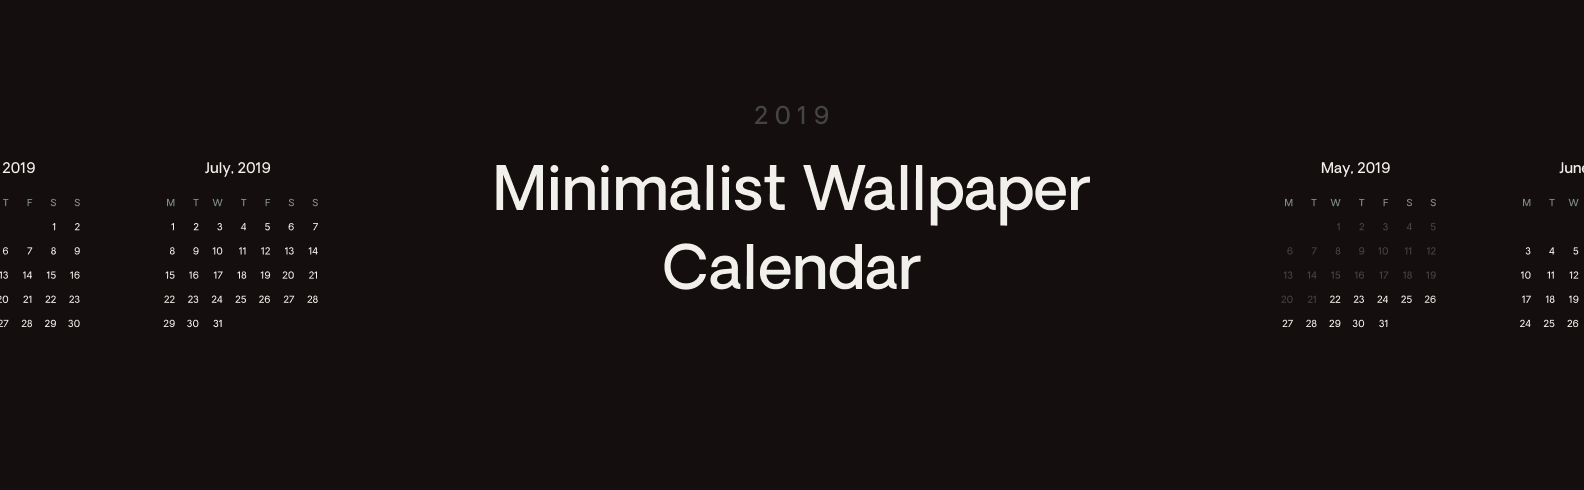 Minimalist Wallpaper Calendar Eryc Da Silva Medium